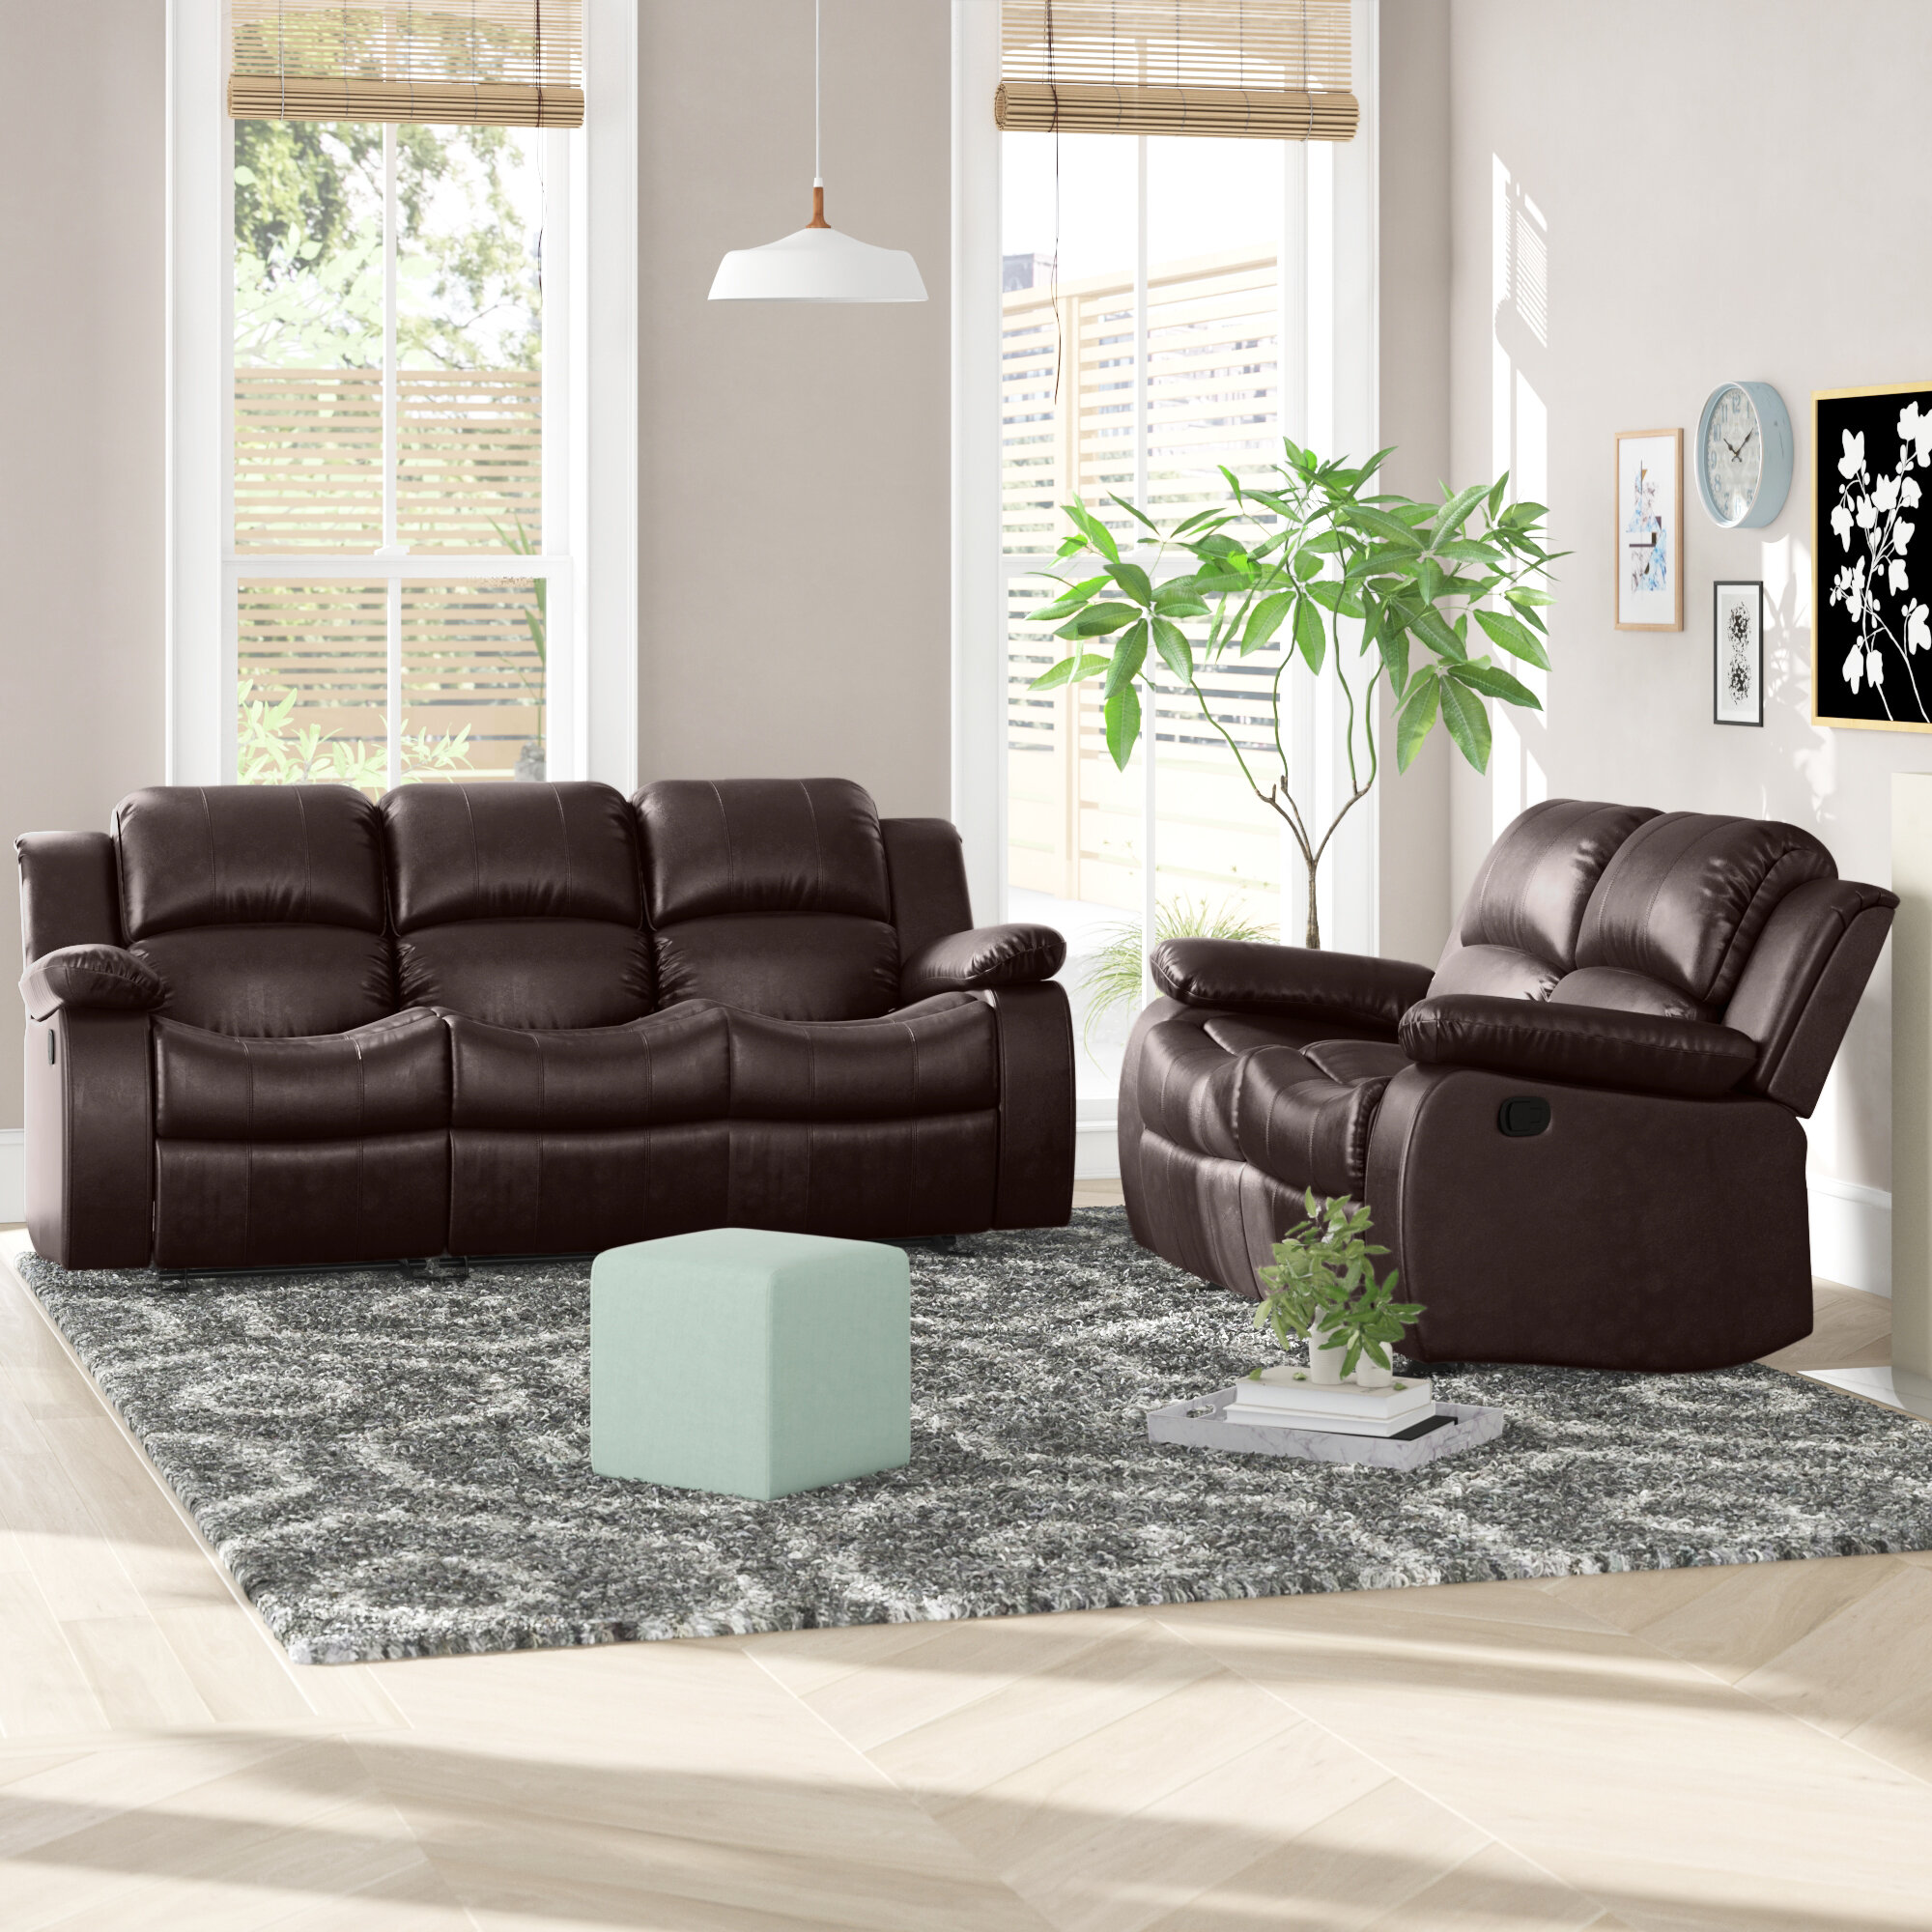 Reclining Living Room Sets Sofas Free Shipping Over 35 Wayfair